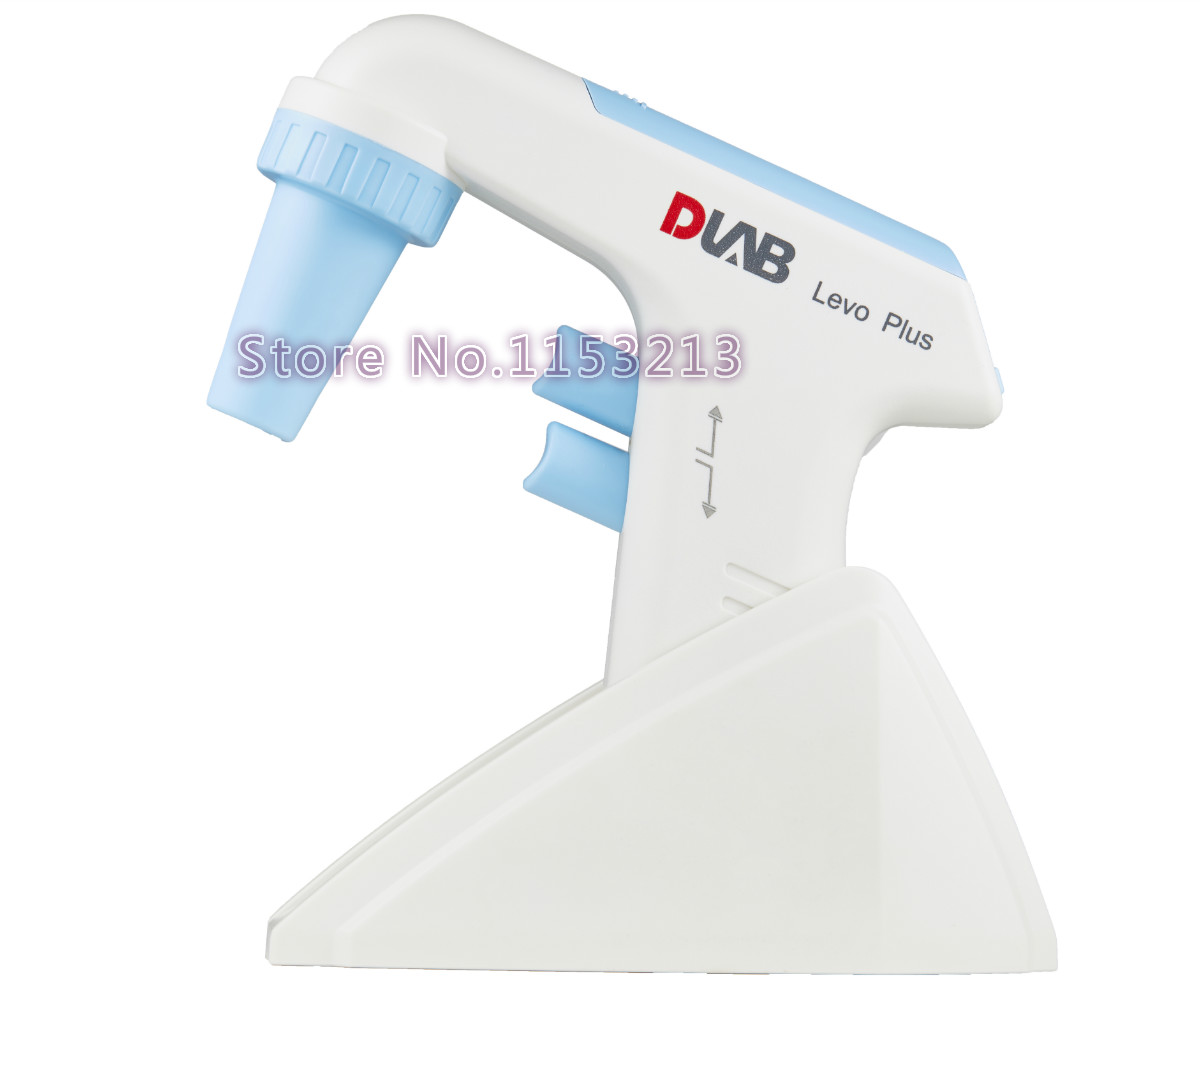 DLab Levo Plus Pipette Filler 0.1-100ml Dragon lab Large capacity electronic pipette pump pipette controller with AC adapter